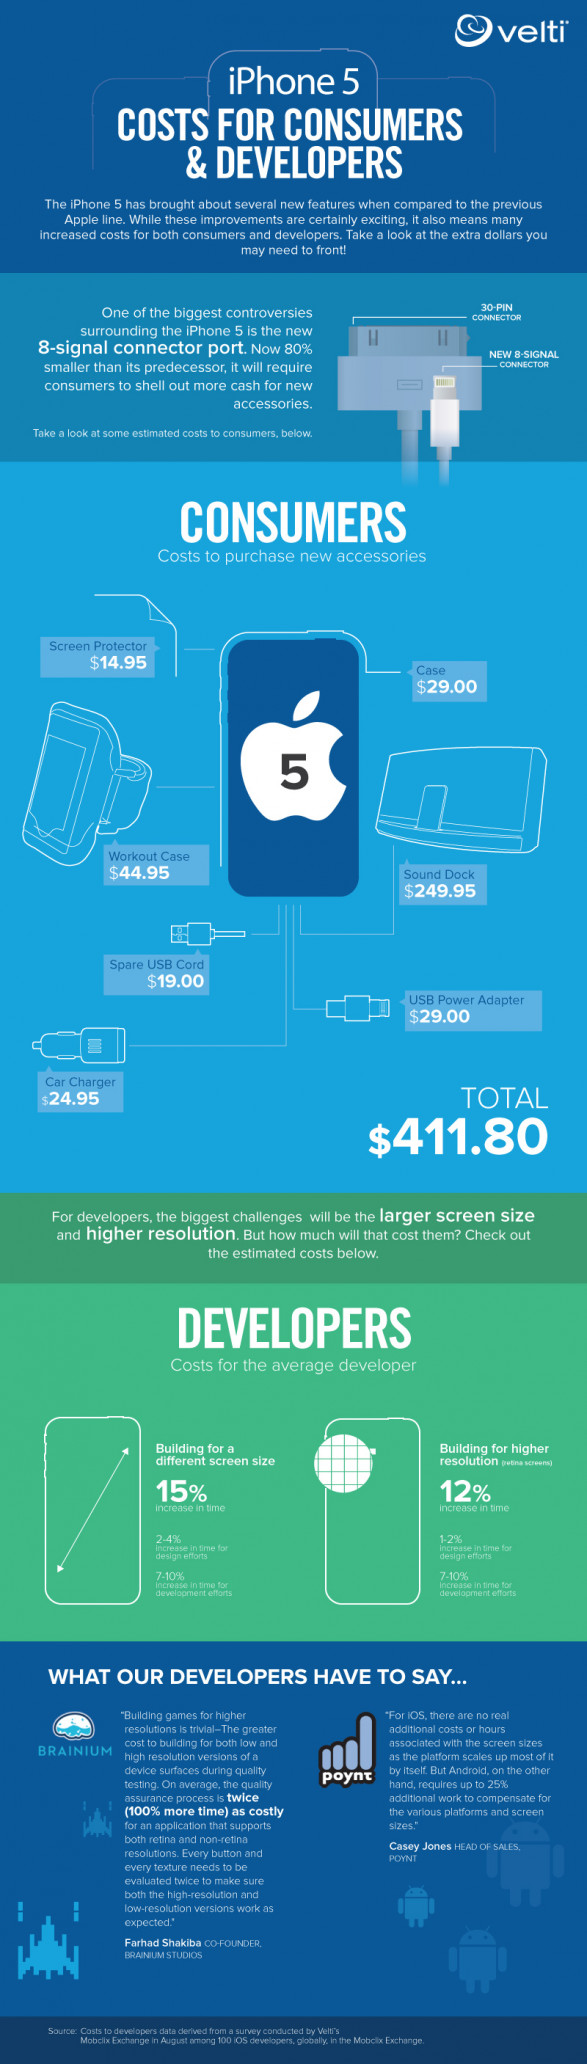 iPhone 5: Costs for Consumers & Developers